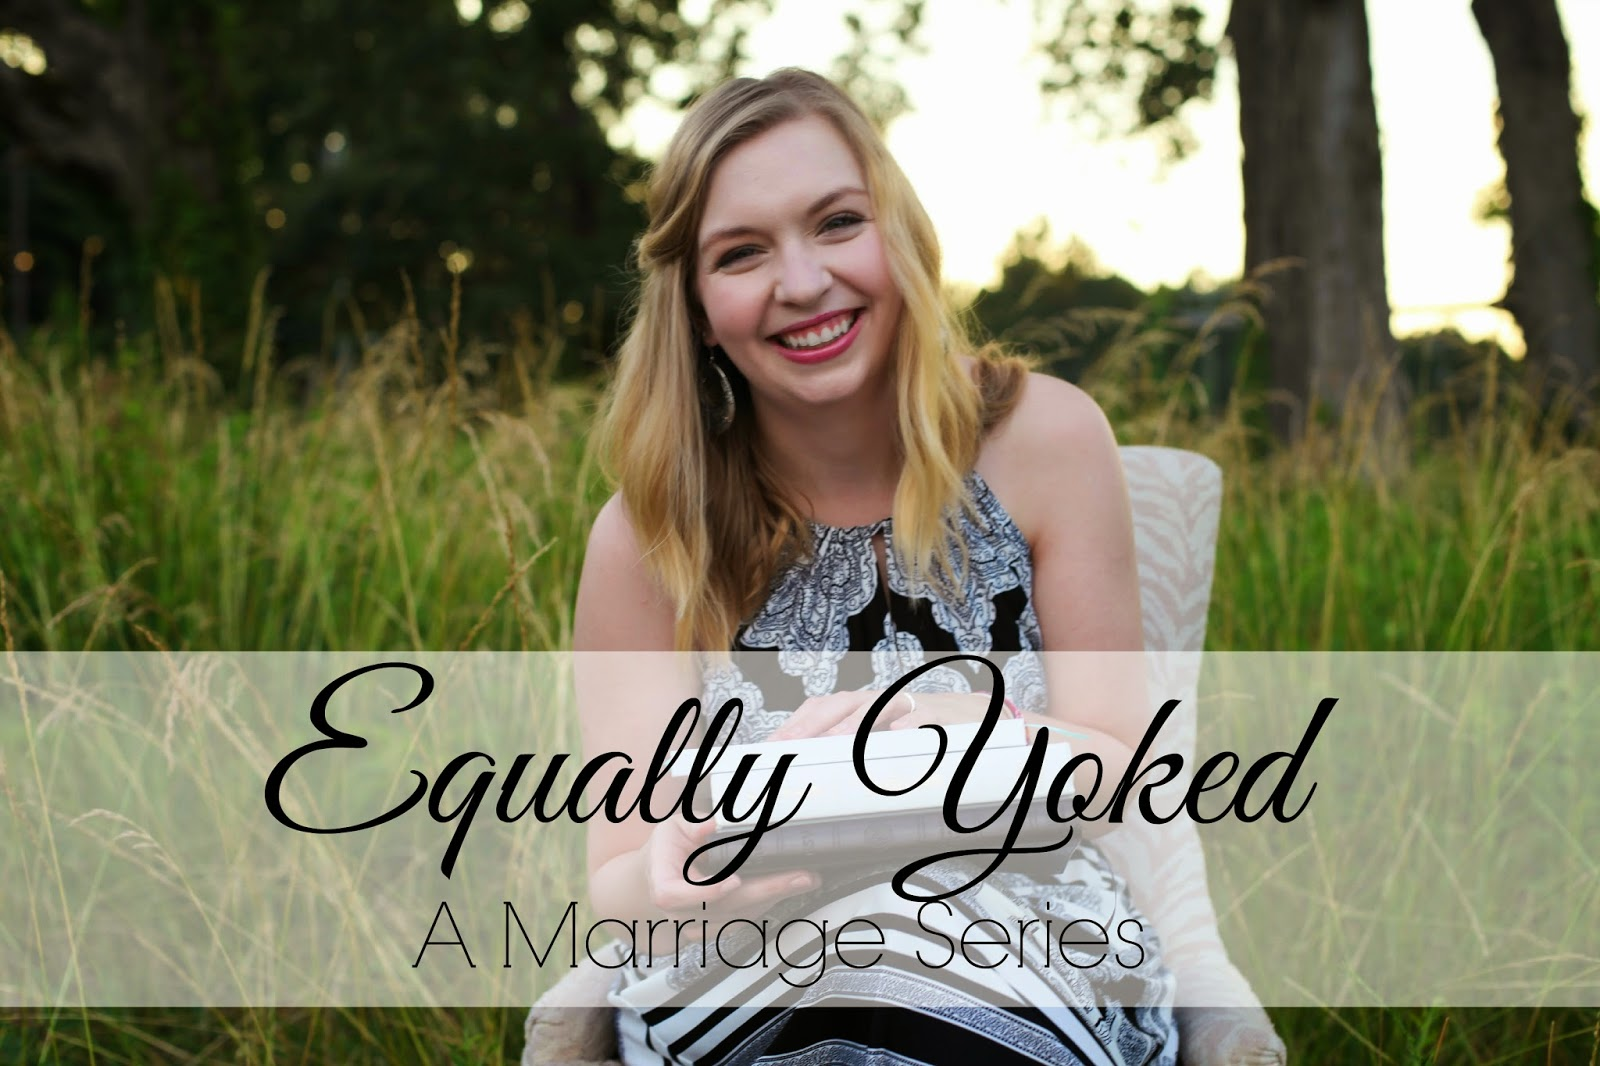 Equally Yoked sage the blog marriage series